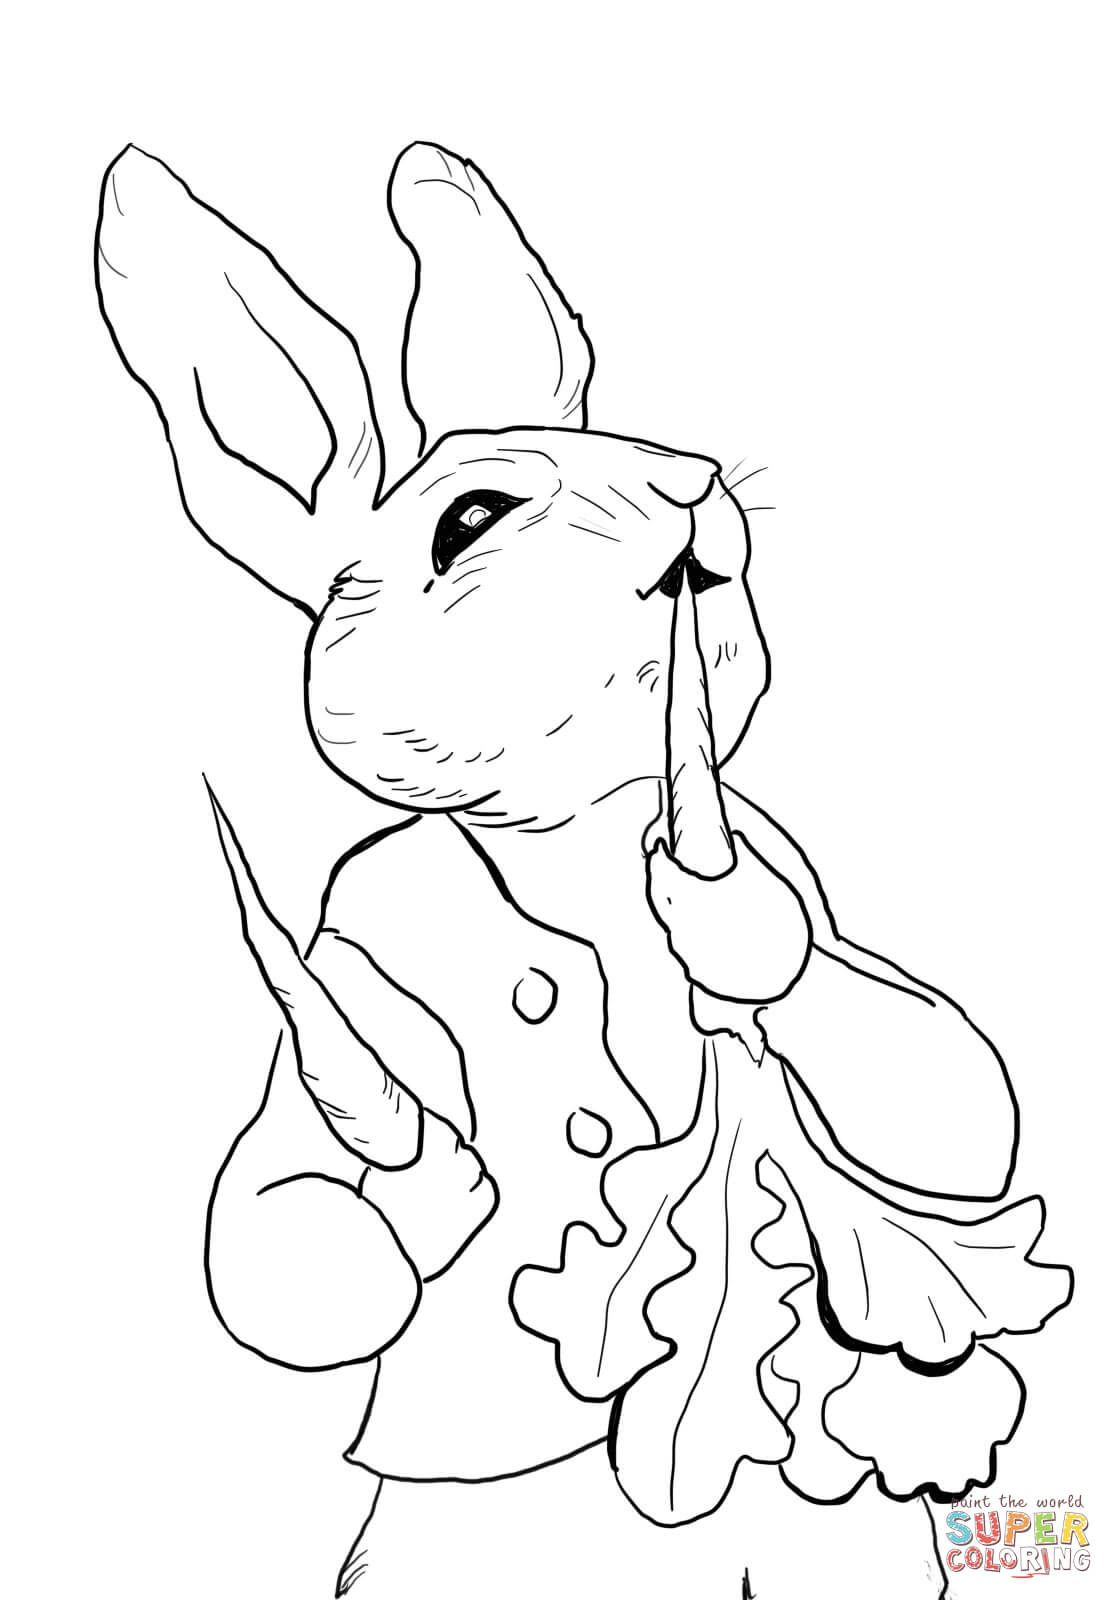 Free printable coloring pages rabbits - Peter Rabbit Eating Radishes Coloring Page Printable Peter Page